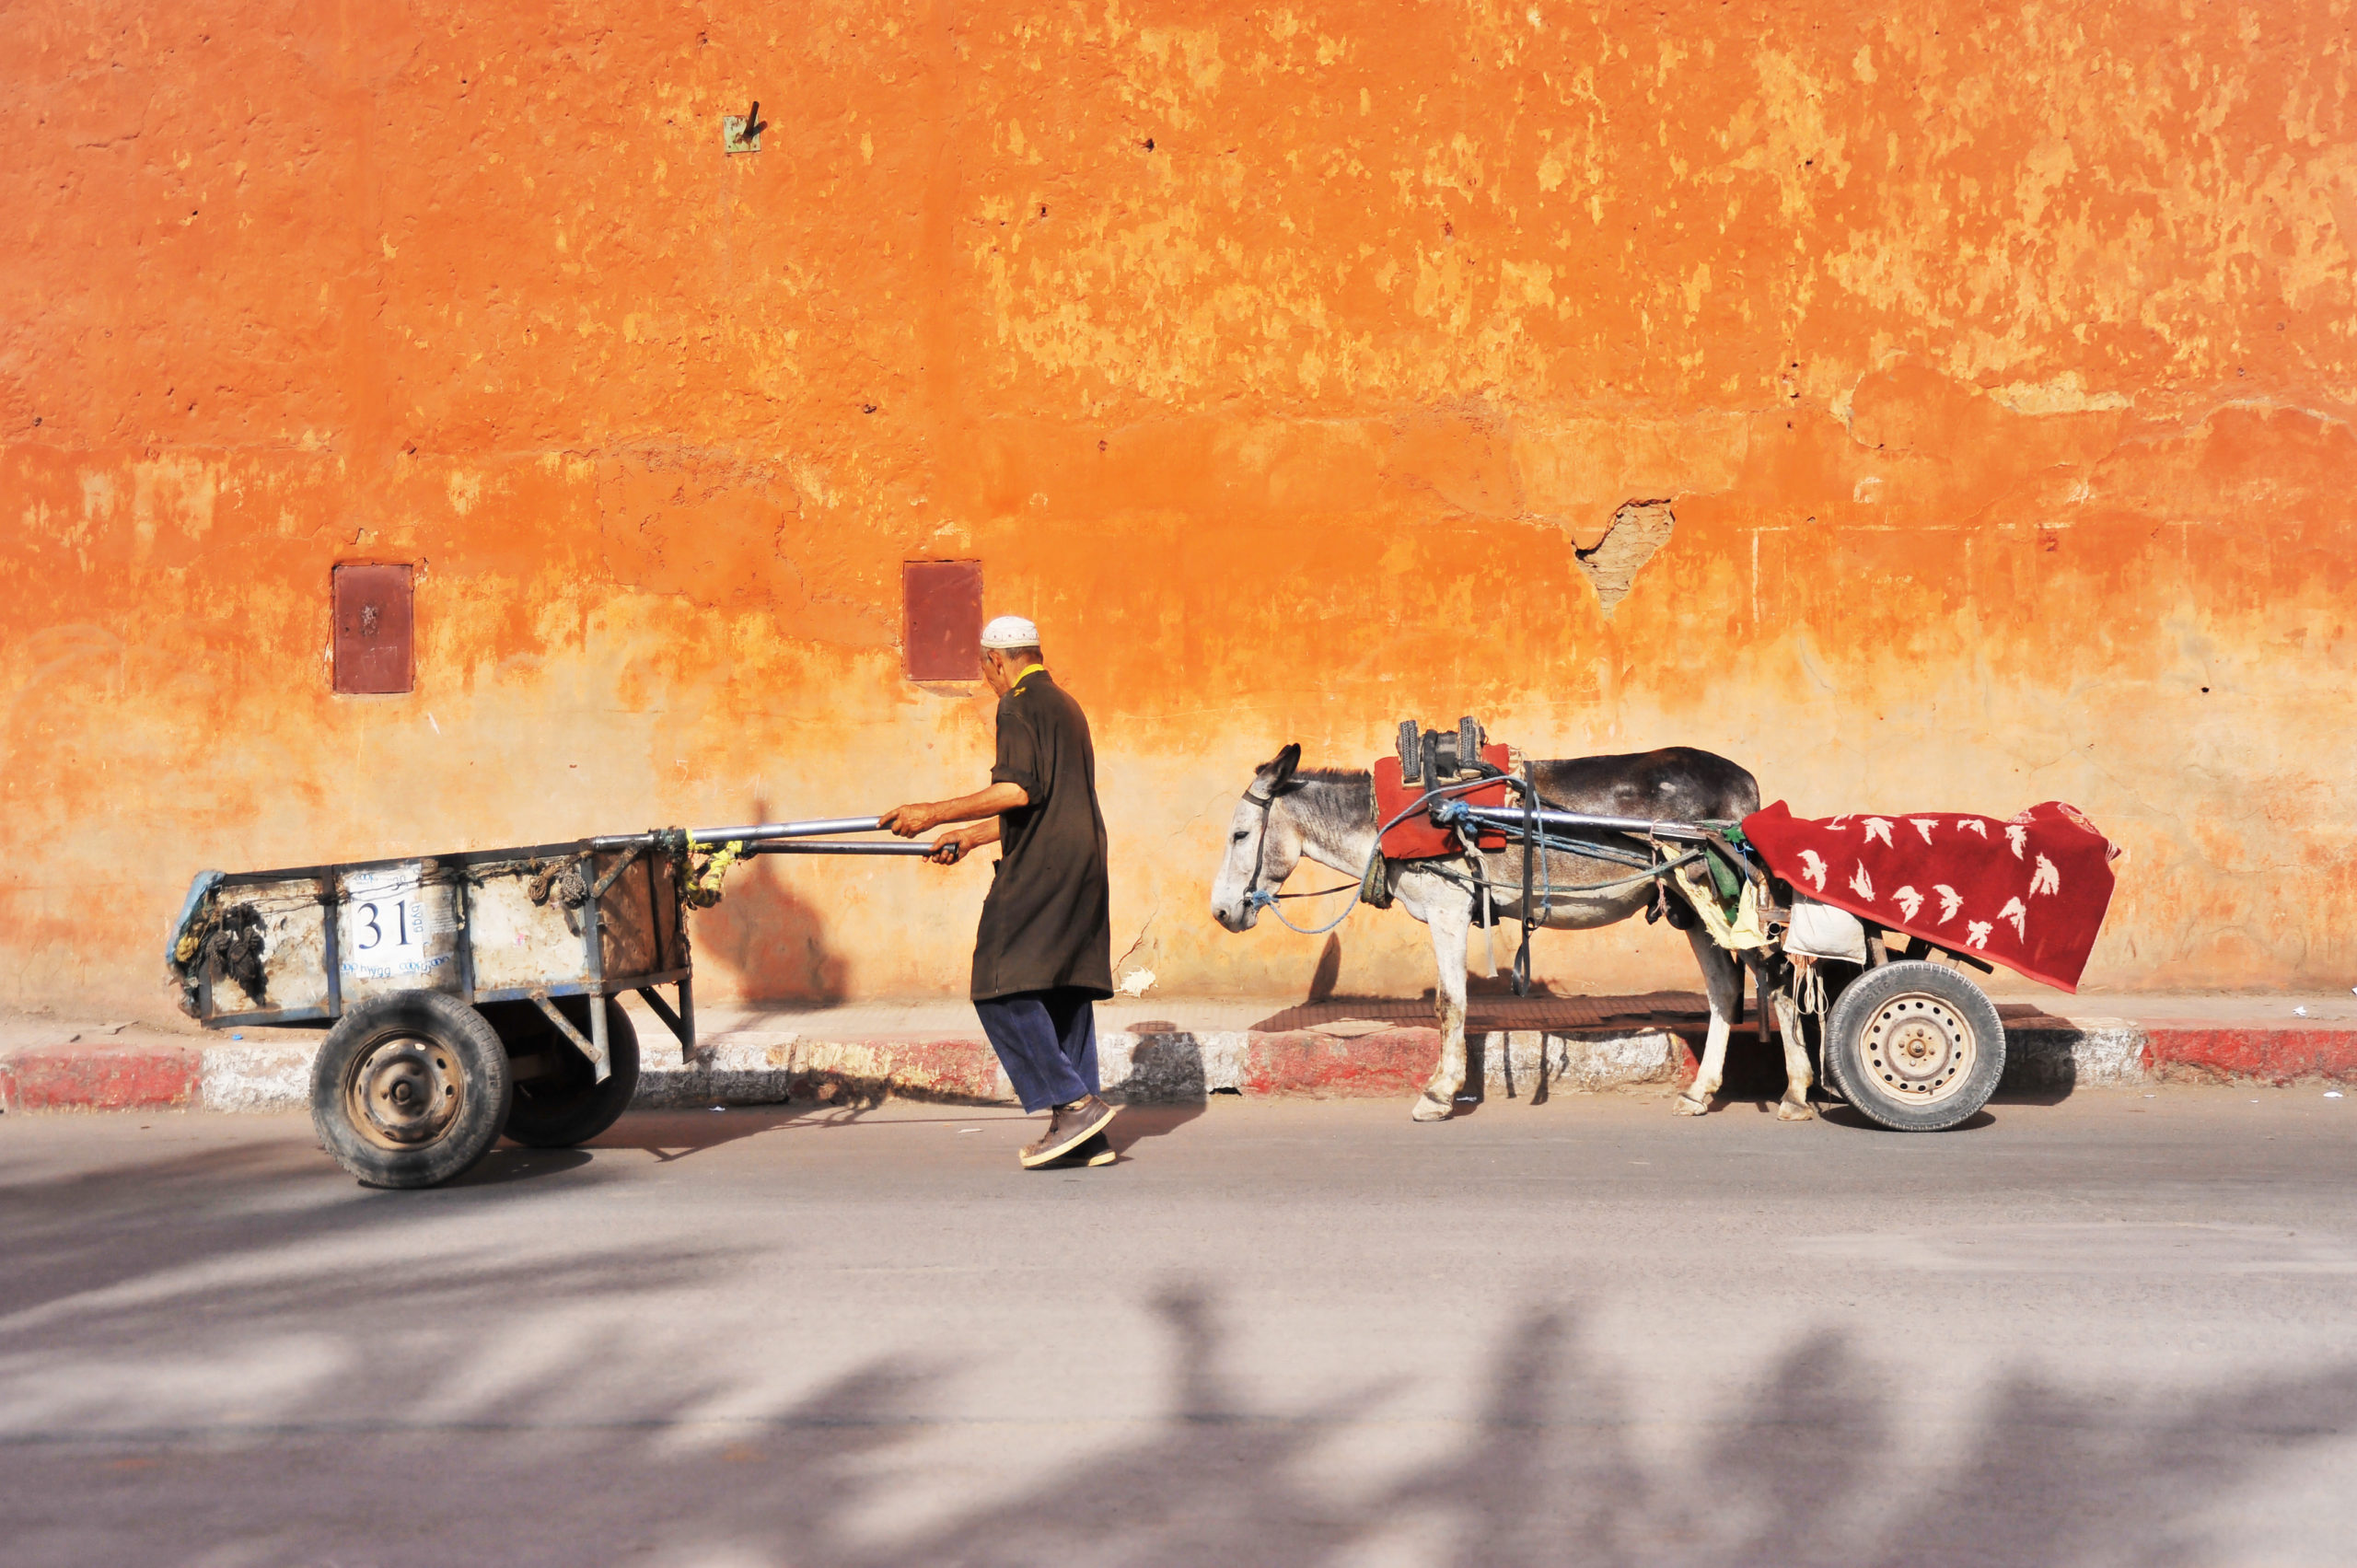 A donkey pulling a wagon of goods faithfully follows a man pushing a cart of goods next to a faded, earthen hued building